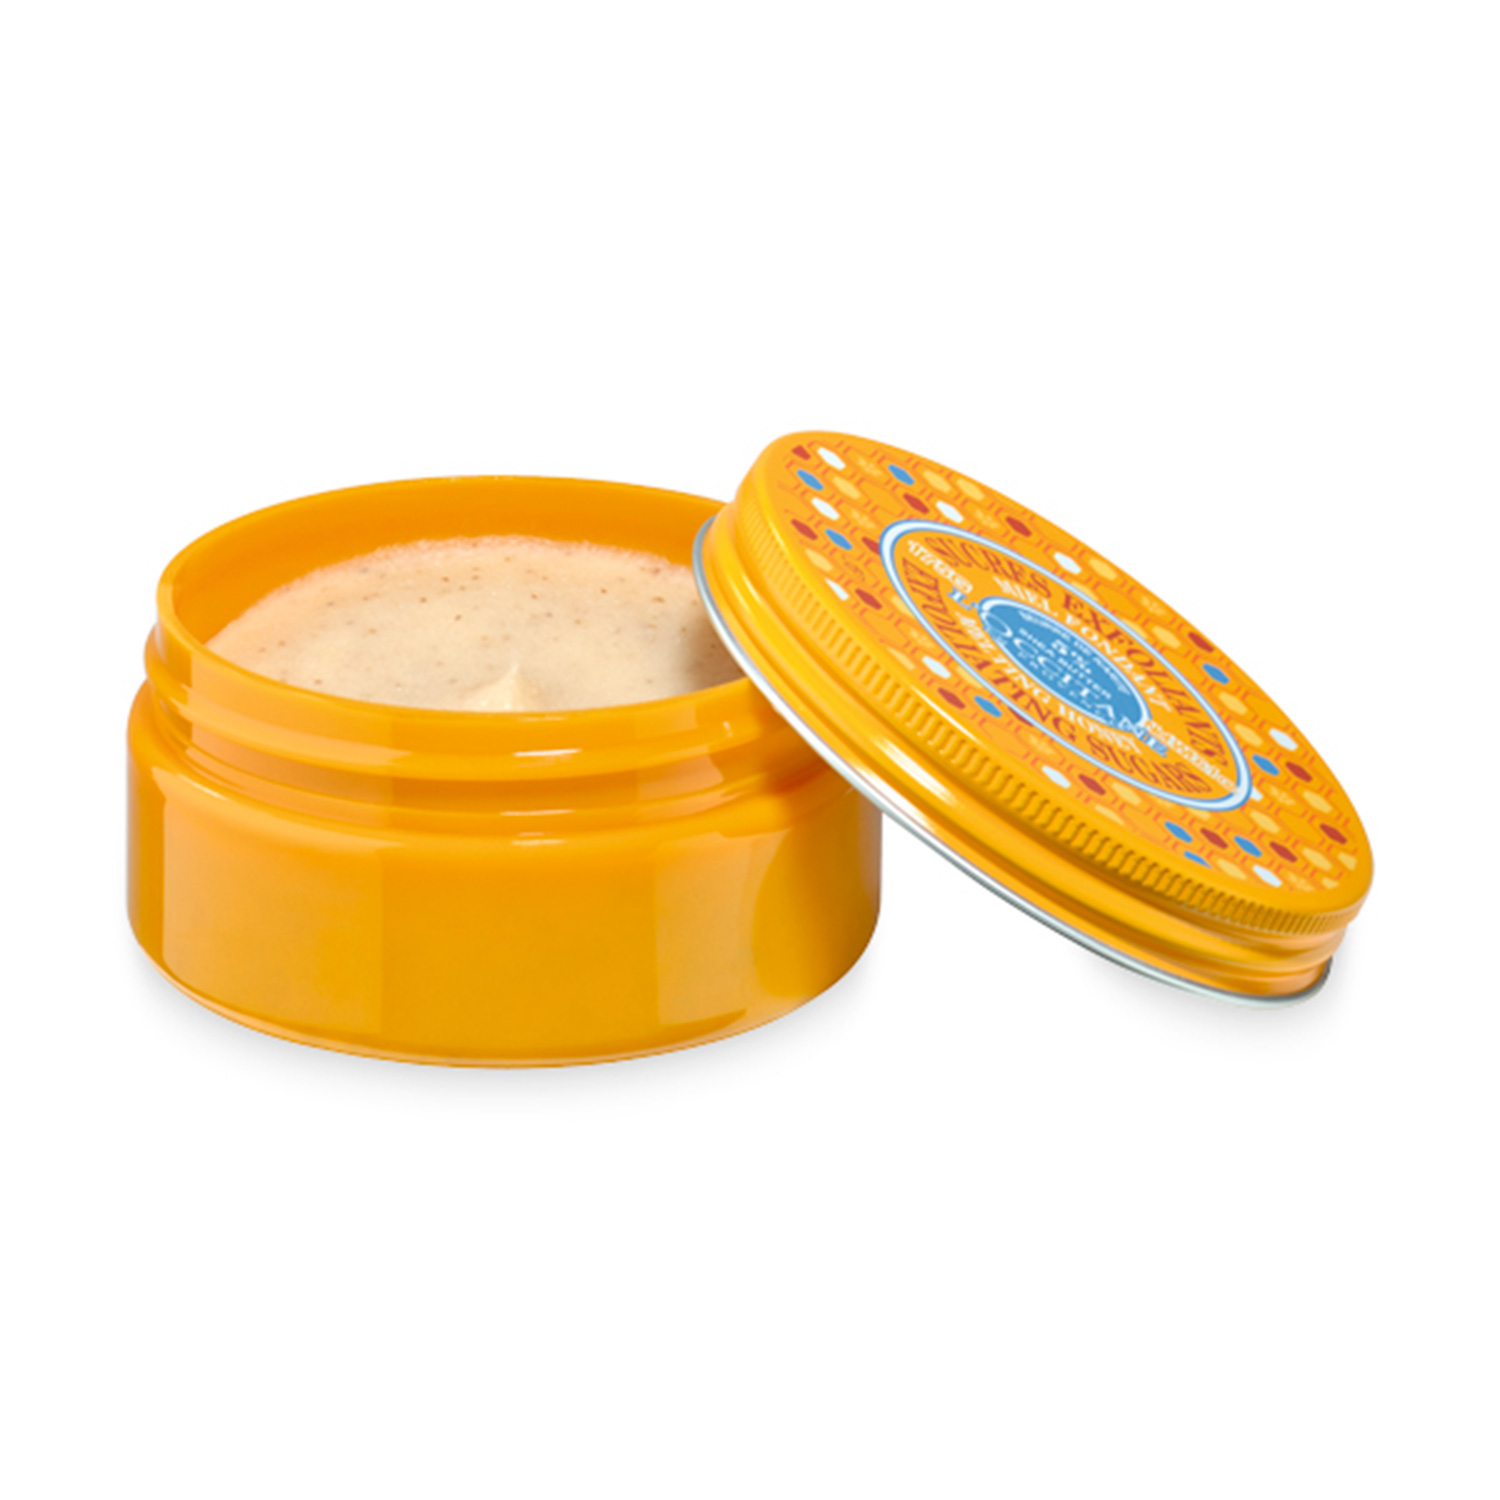 Shea Honey Exfoliating Sugars 175g, $46